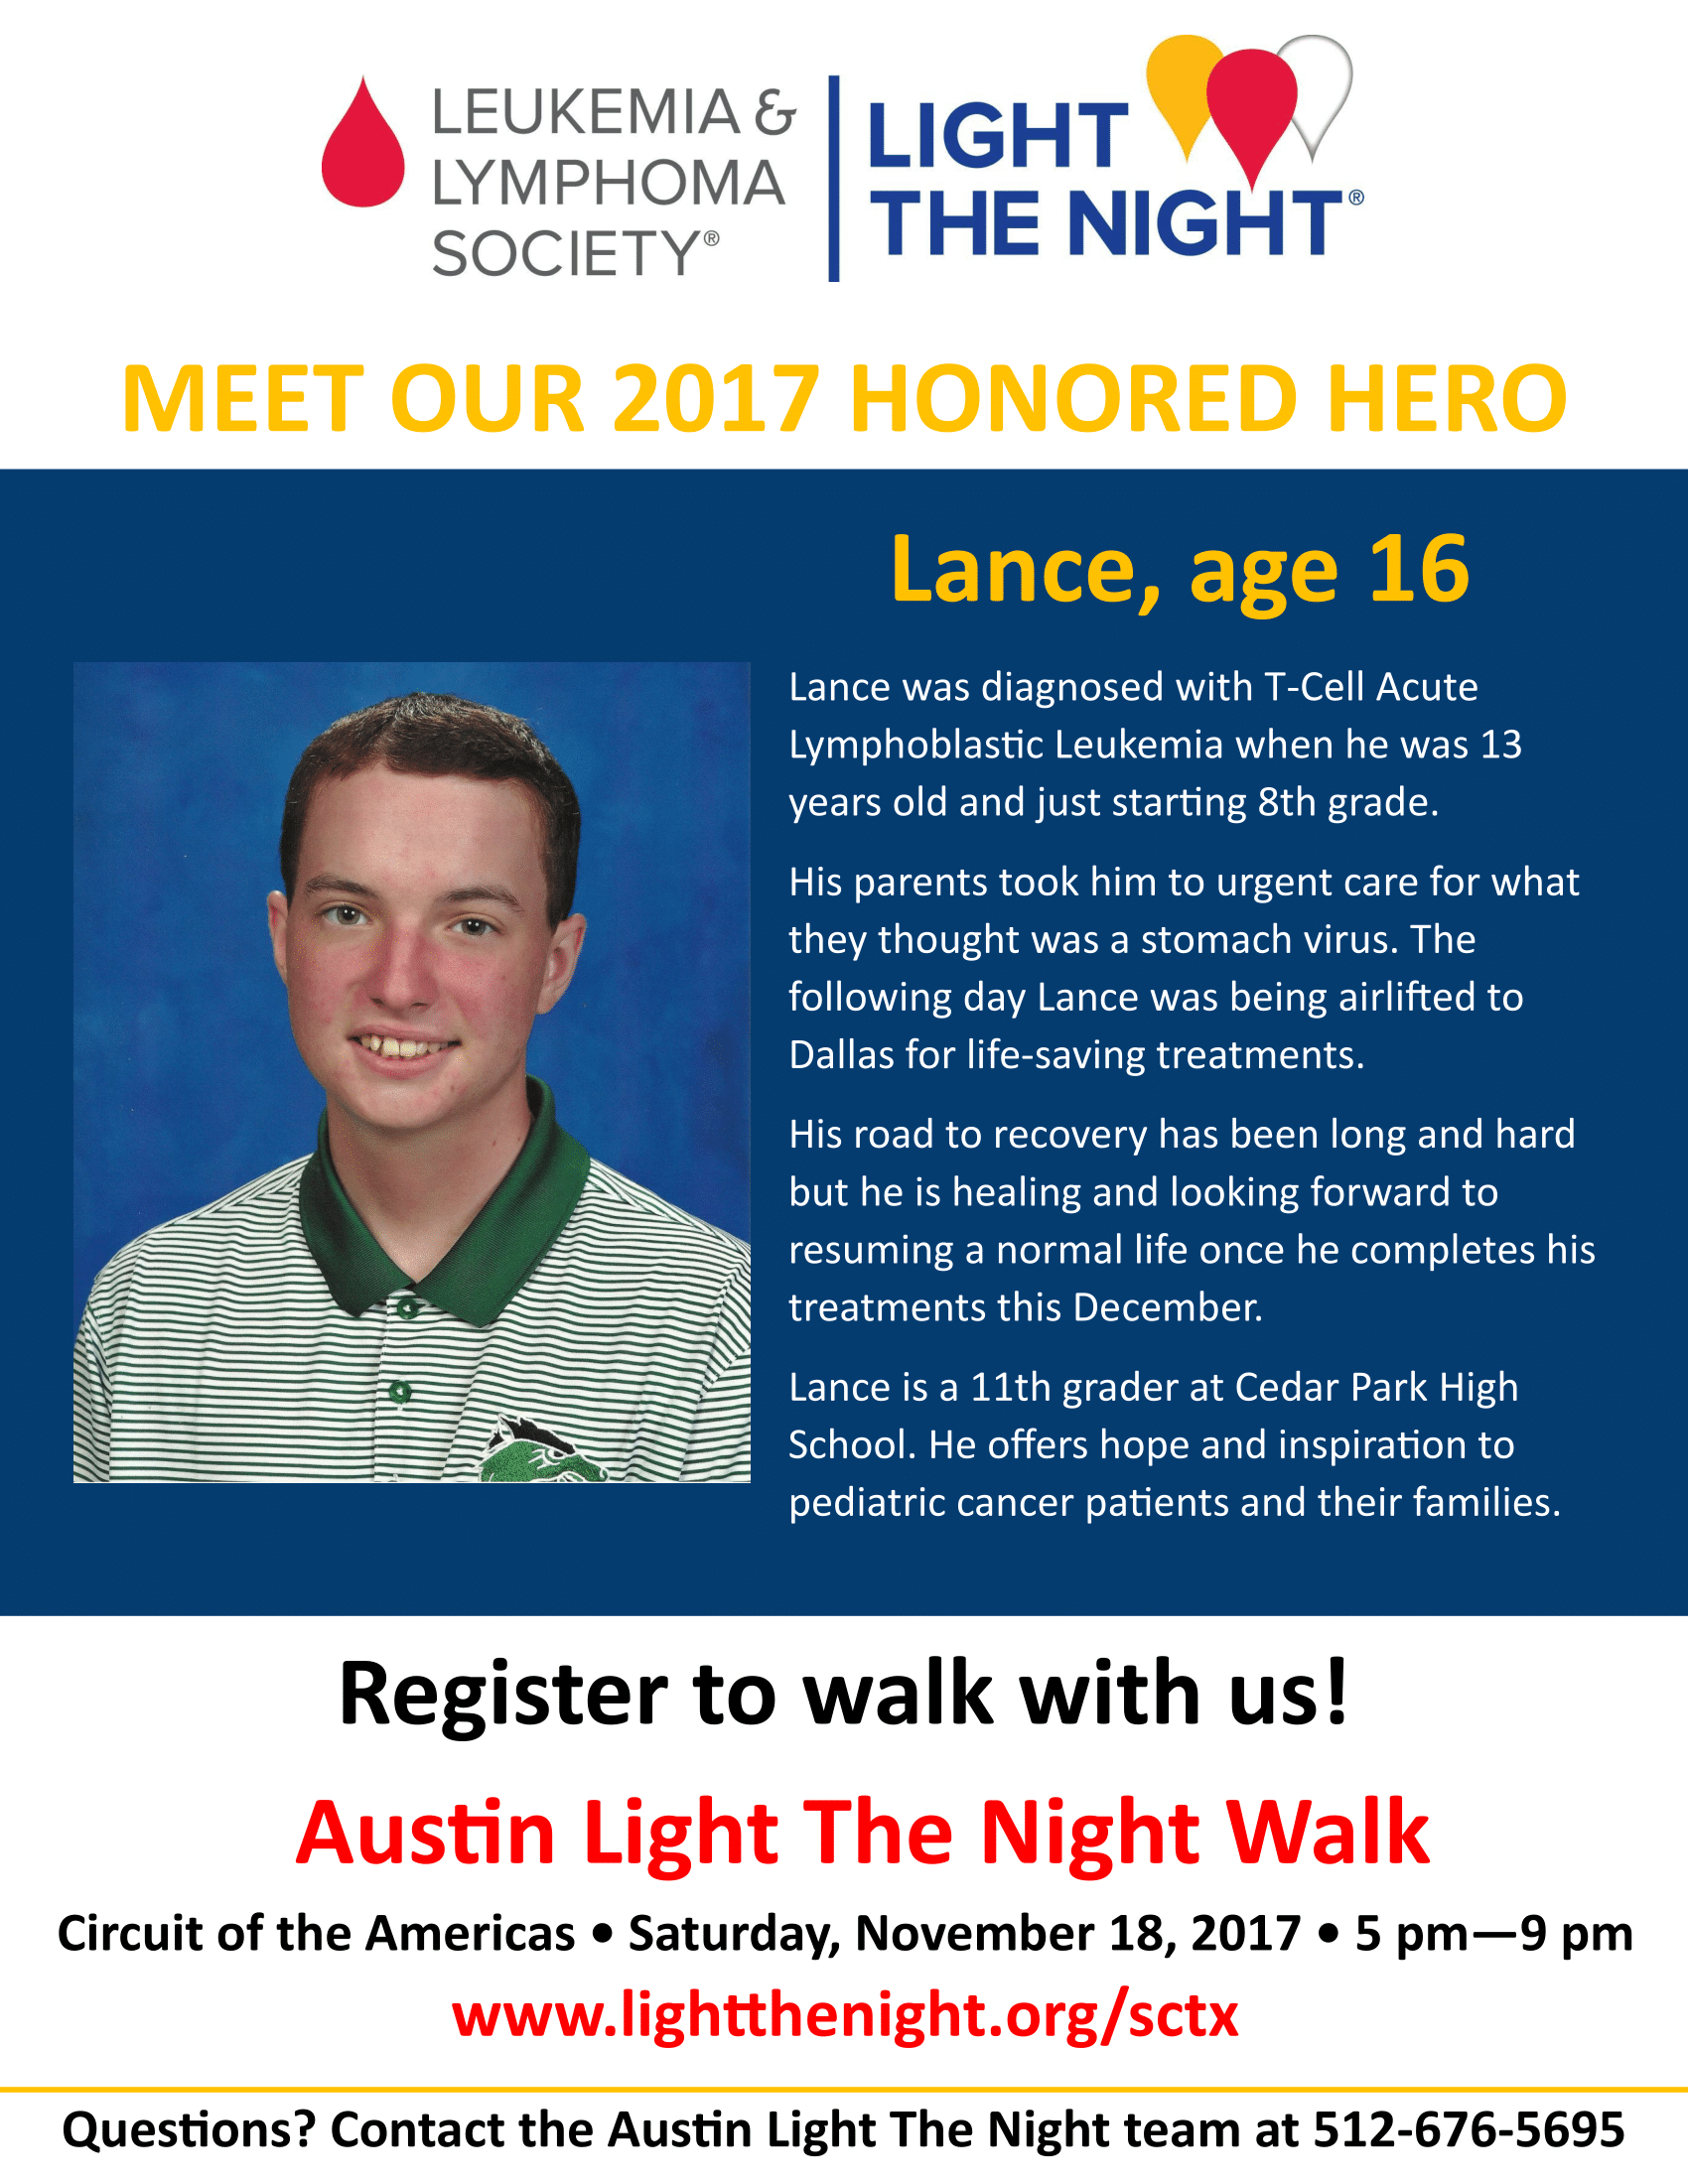 Lance Honored Hero for Light the Night